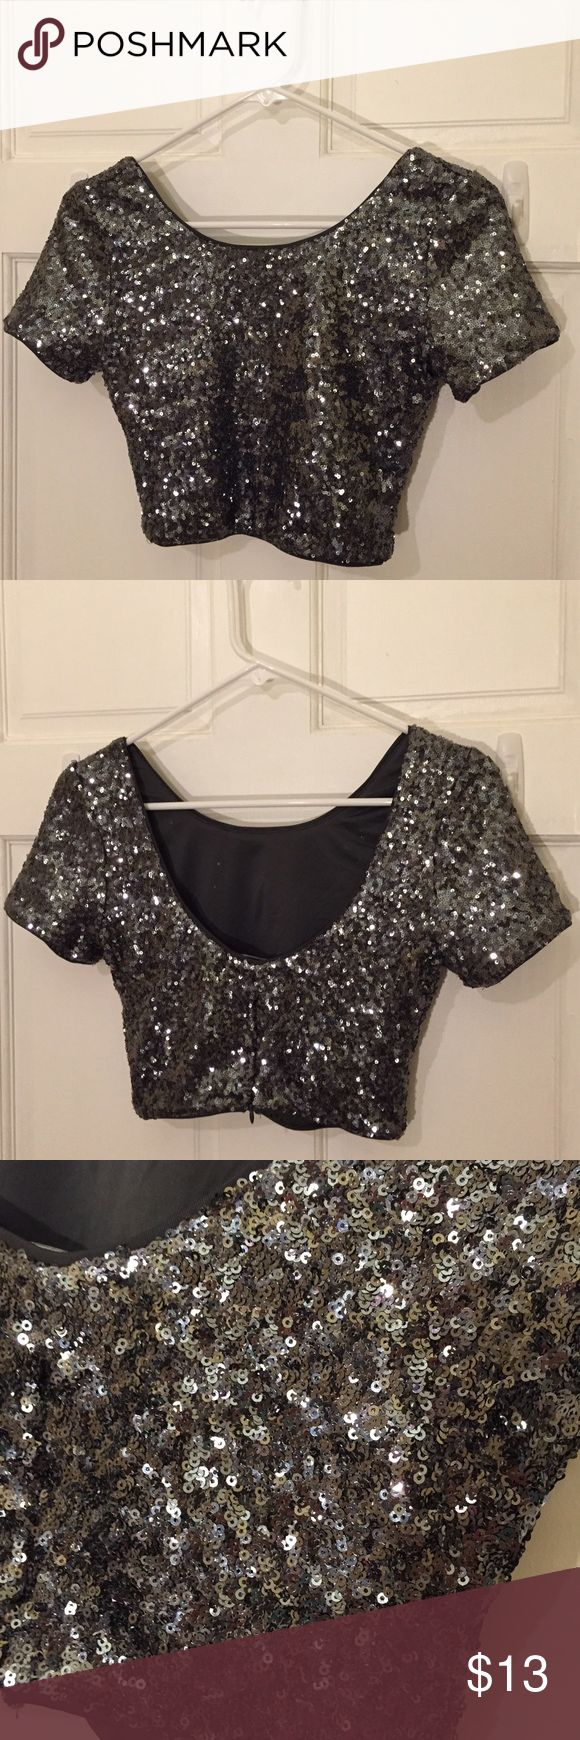 Sparkly Crop Top Light up your night life with this fun crop top. Features seen on sparkle flakes- NOT glitter that will come off. The perfect time for going out. Forever 21 Tops Crop Tops